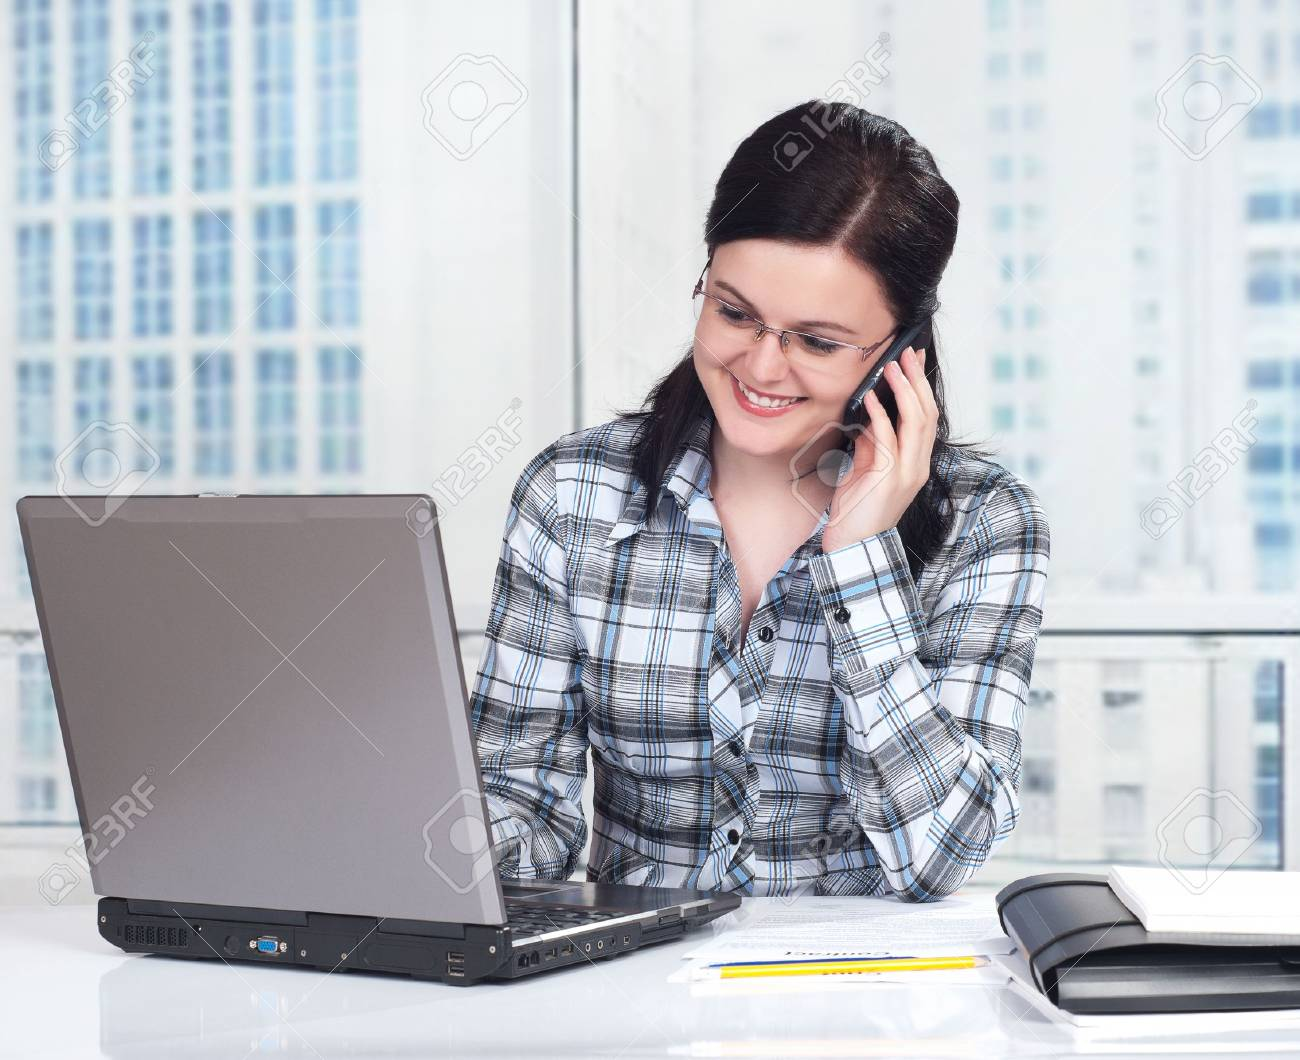 Portrait of a pretty young woman with phone in front of a laptop computer Stock Photo - 9271484